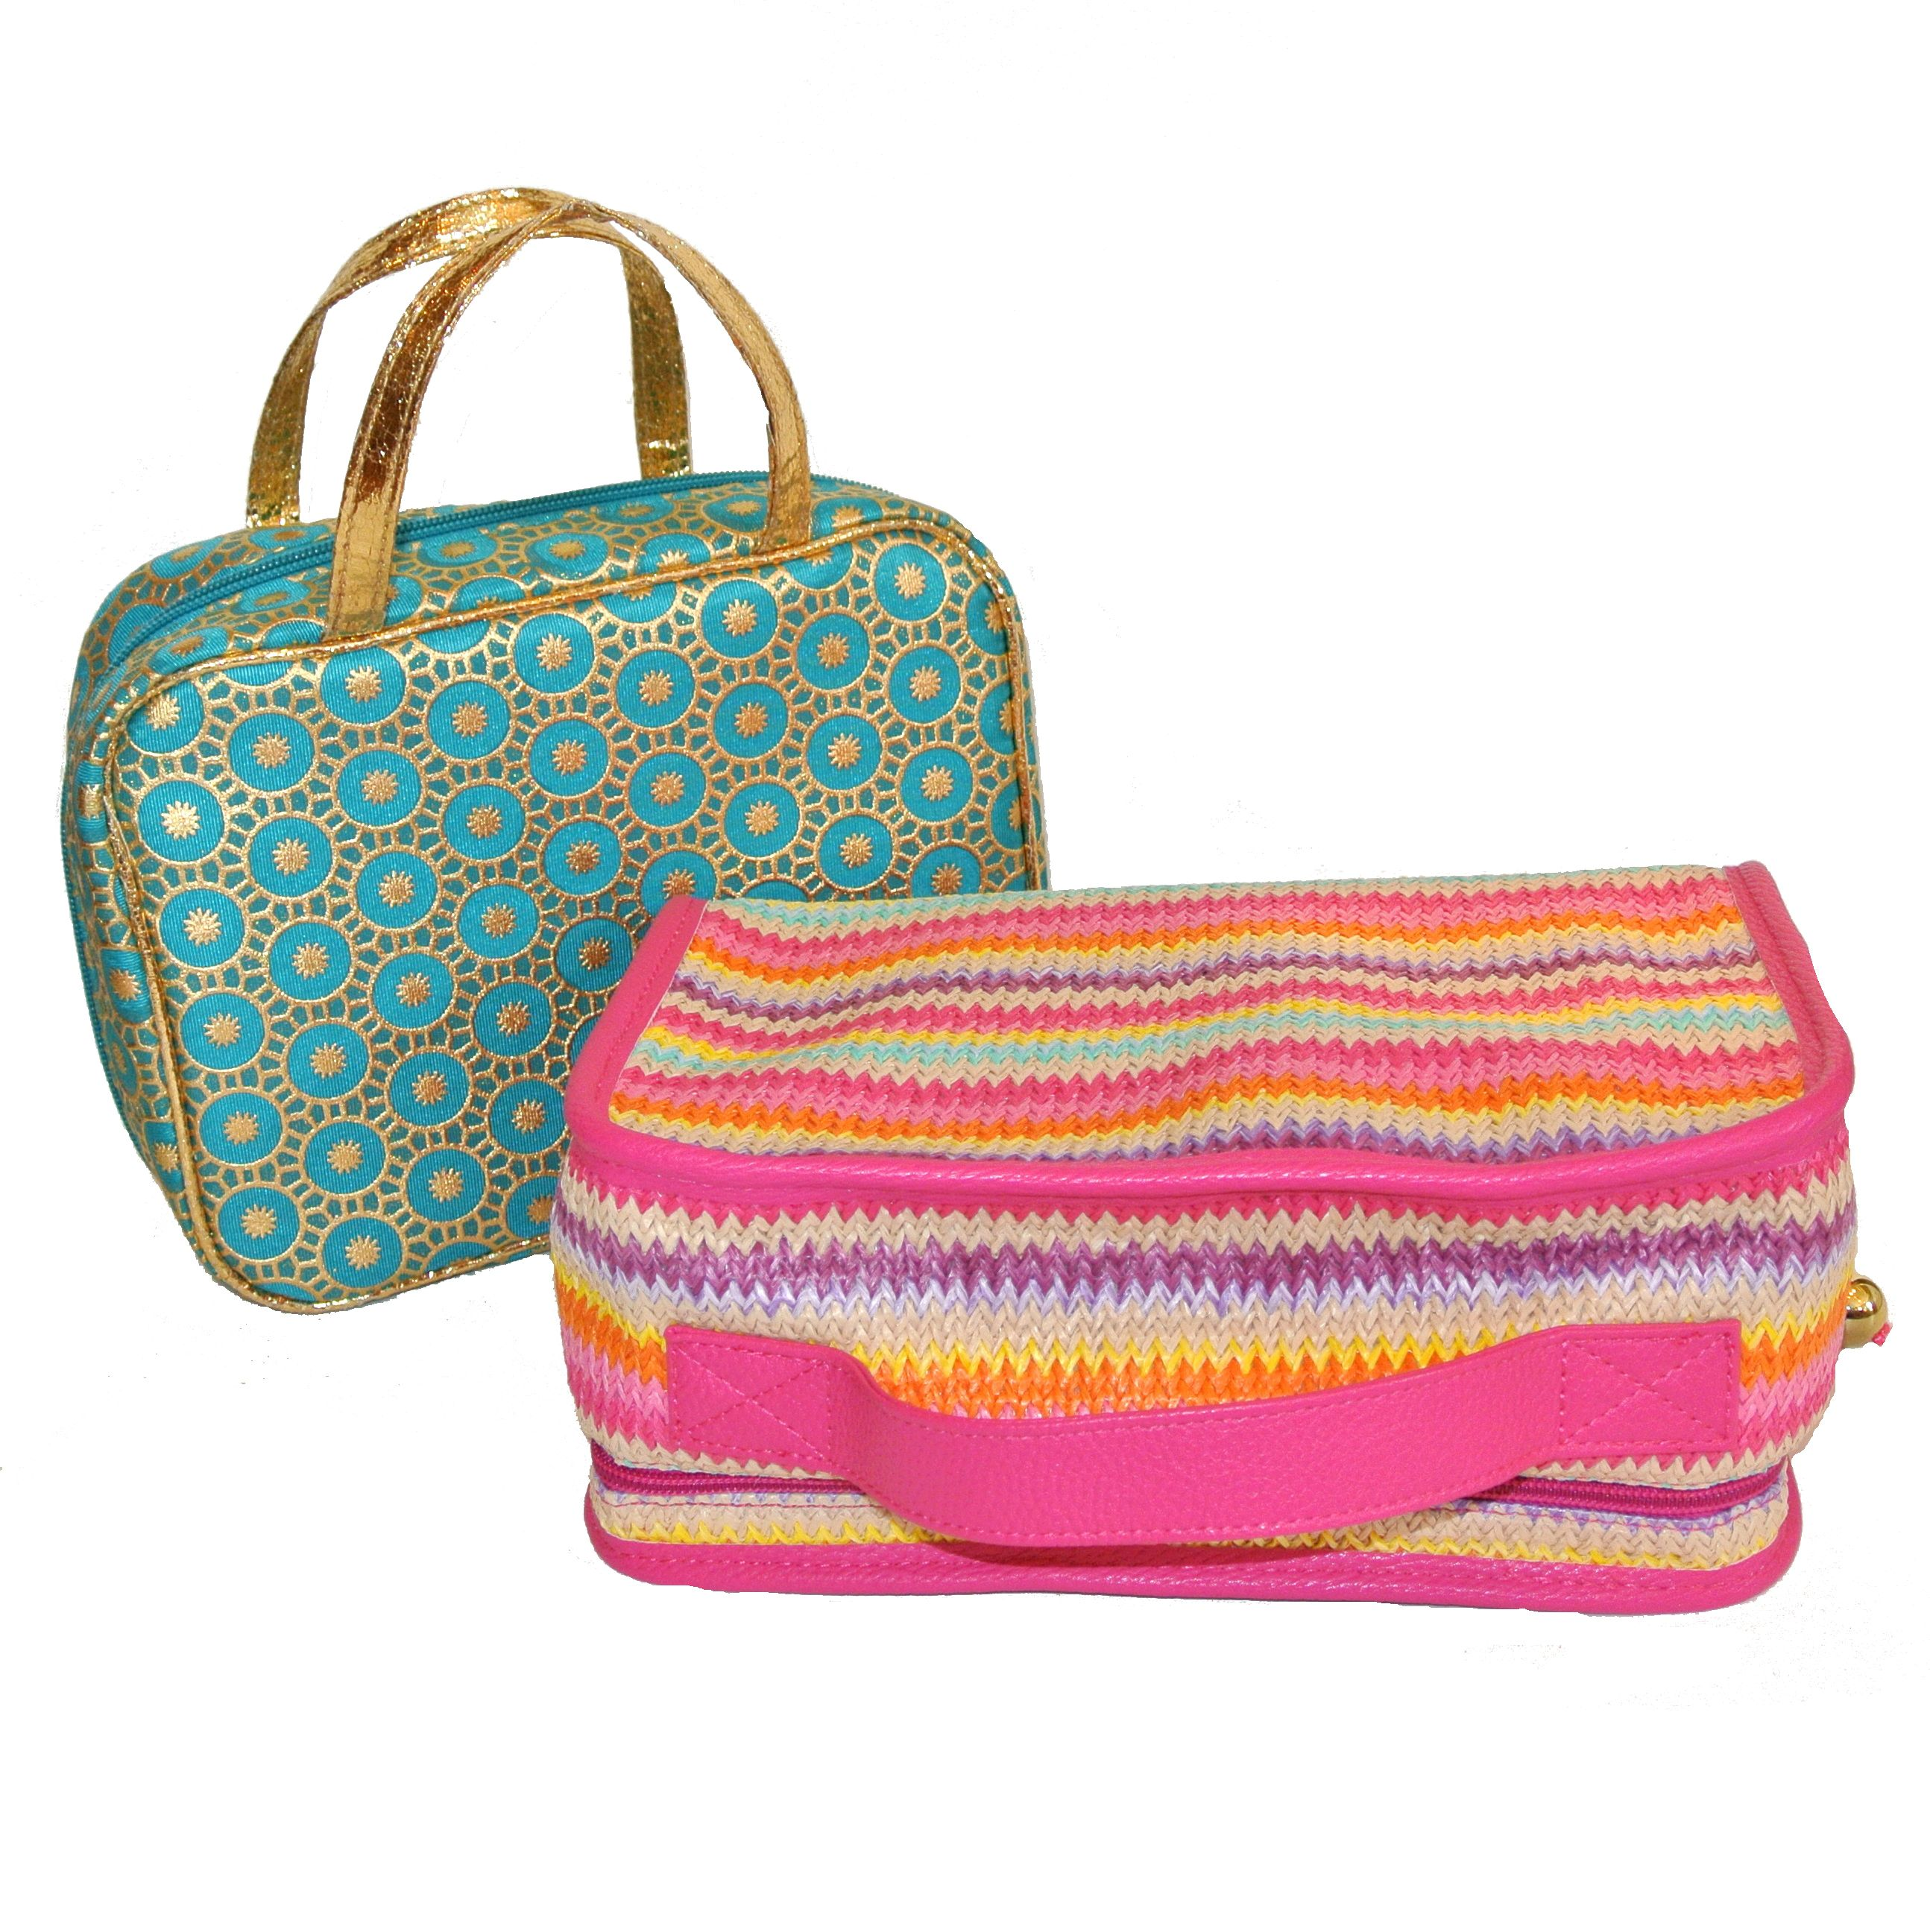 Going somewhere? #StephanieJohnson Travel Accessories @Cottage Chic